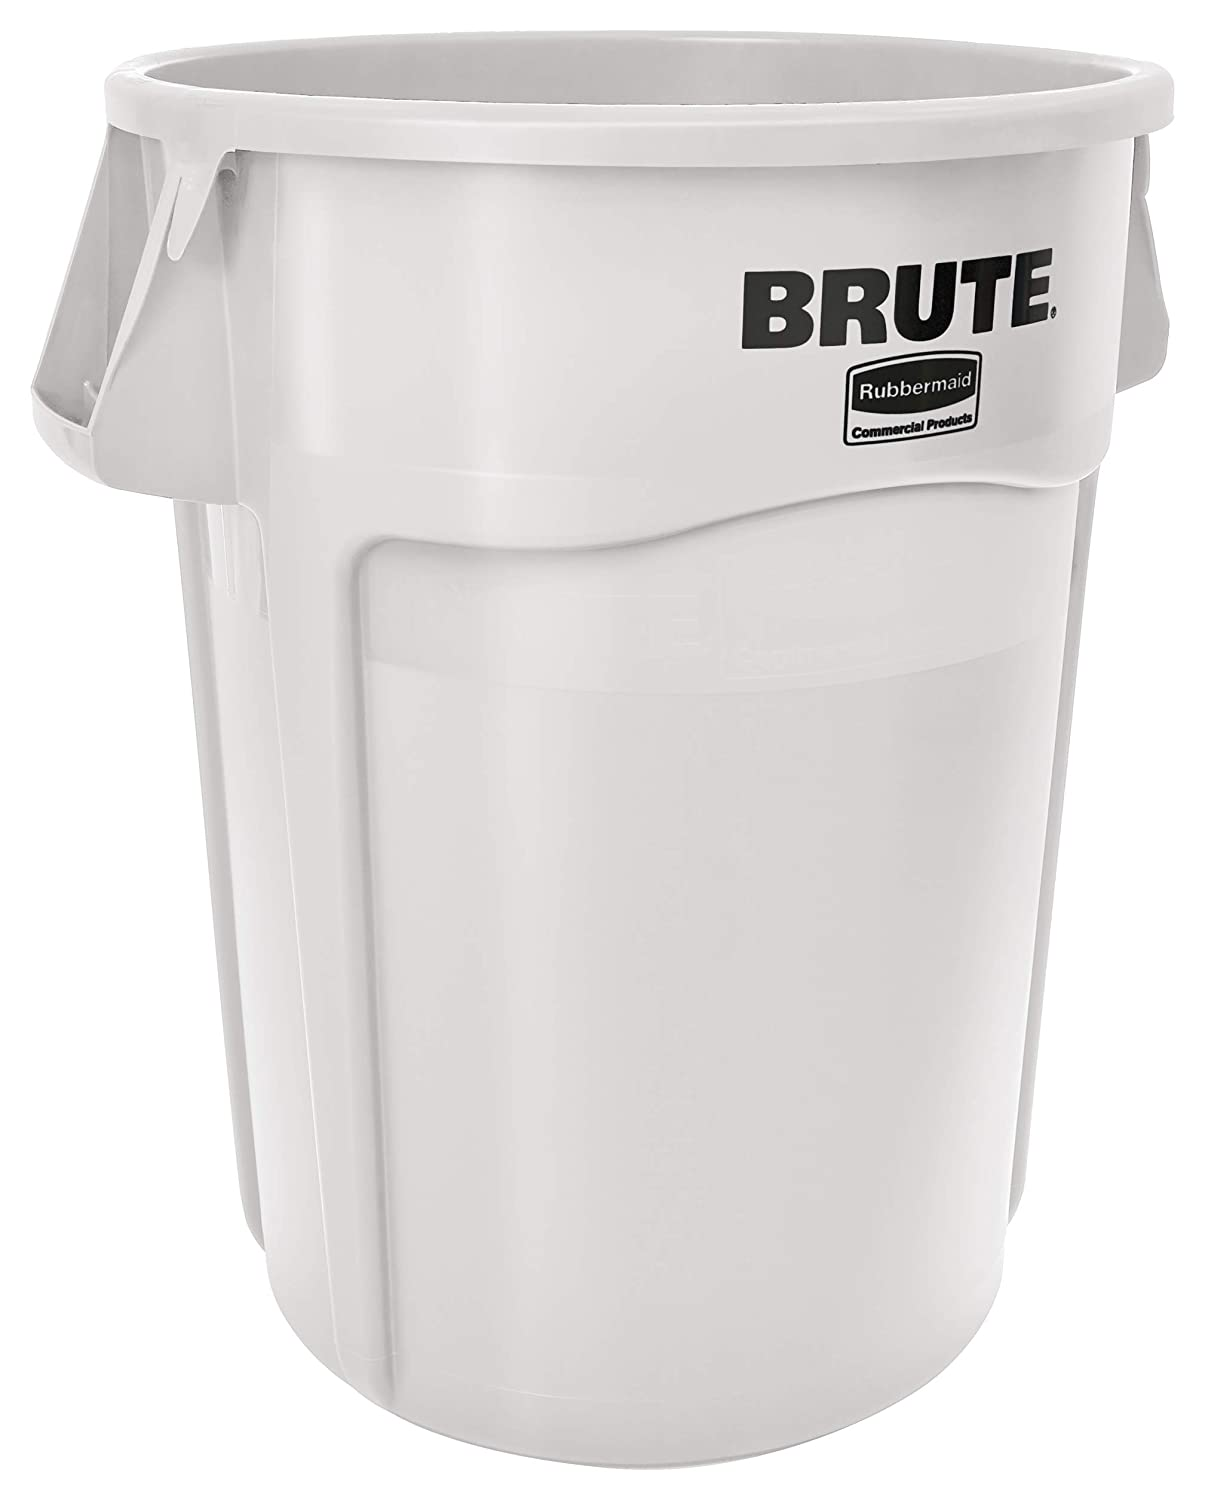 Rubbermaid Commercial Products BRUTE Heavy-Duty Round Trash/Garbage Can with Venting Channels - 44 Gallon - White (Pack of 1)